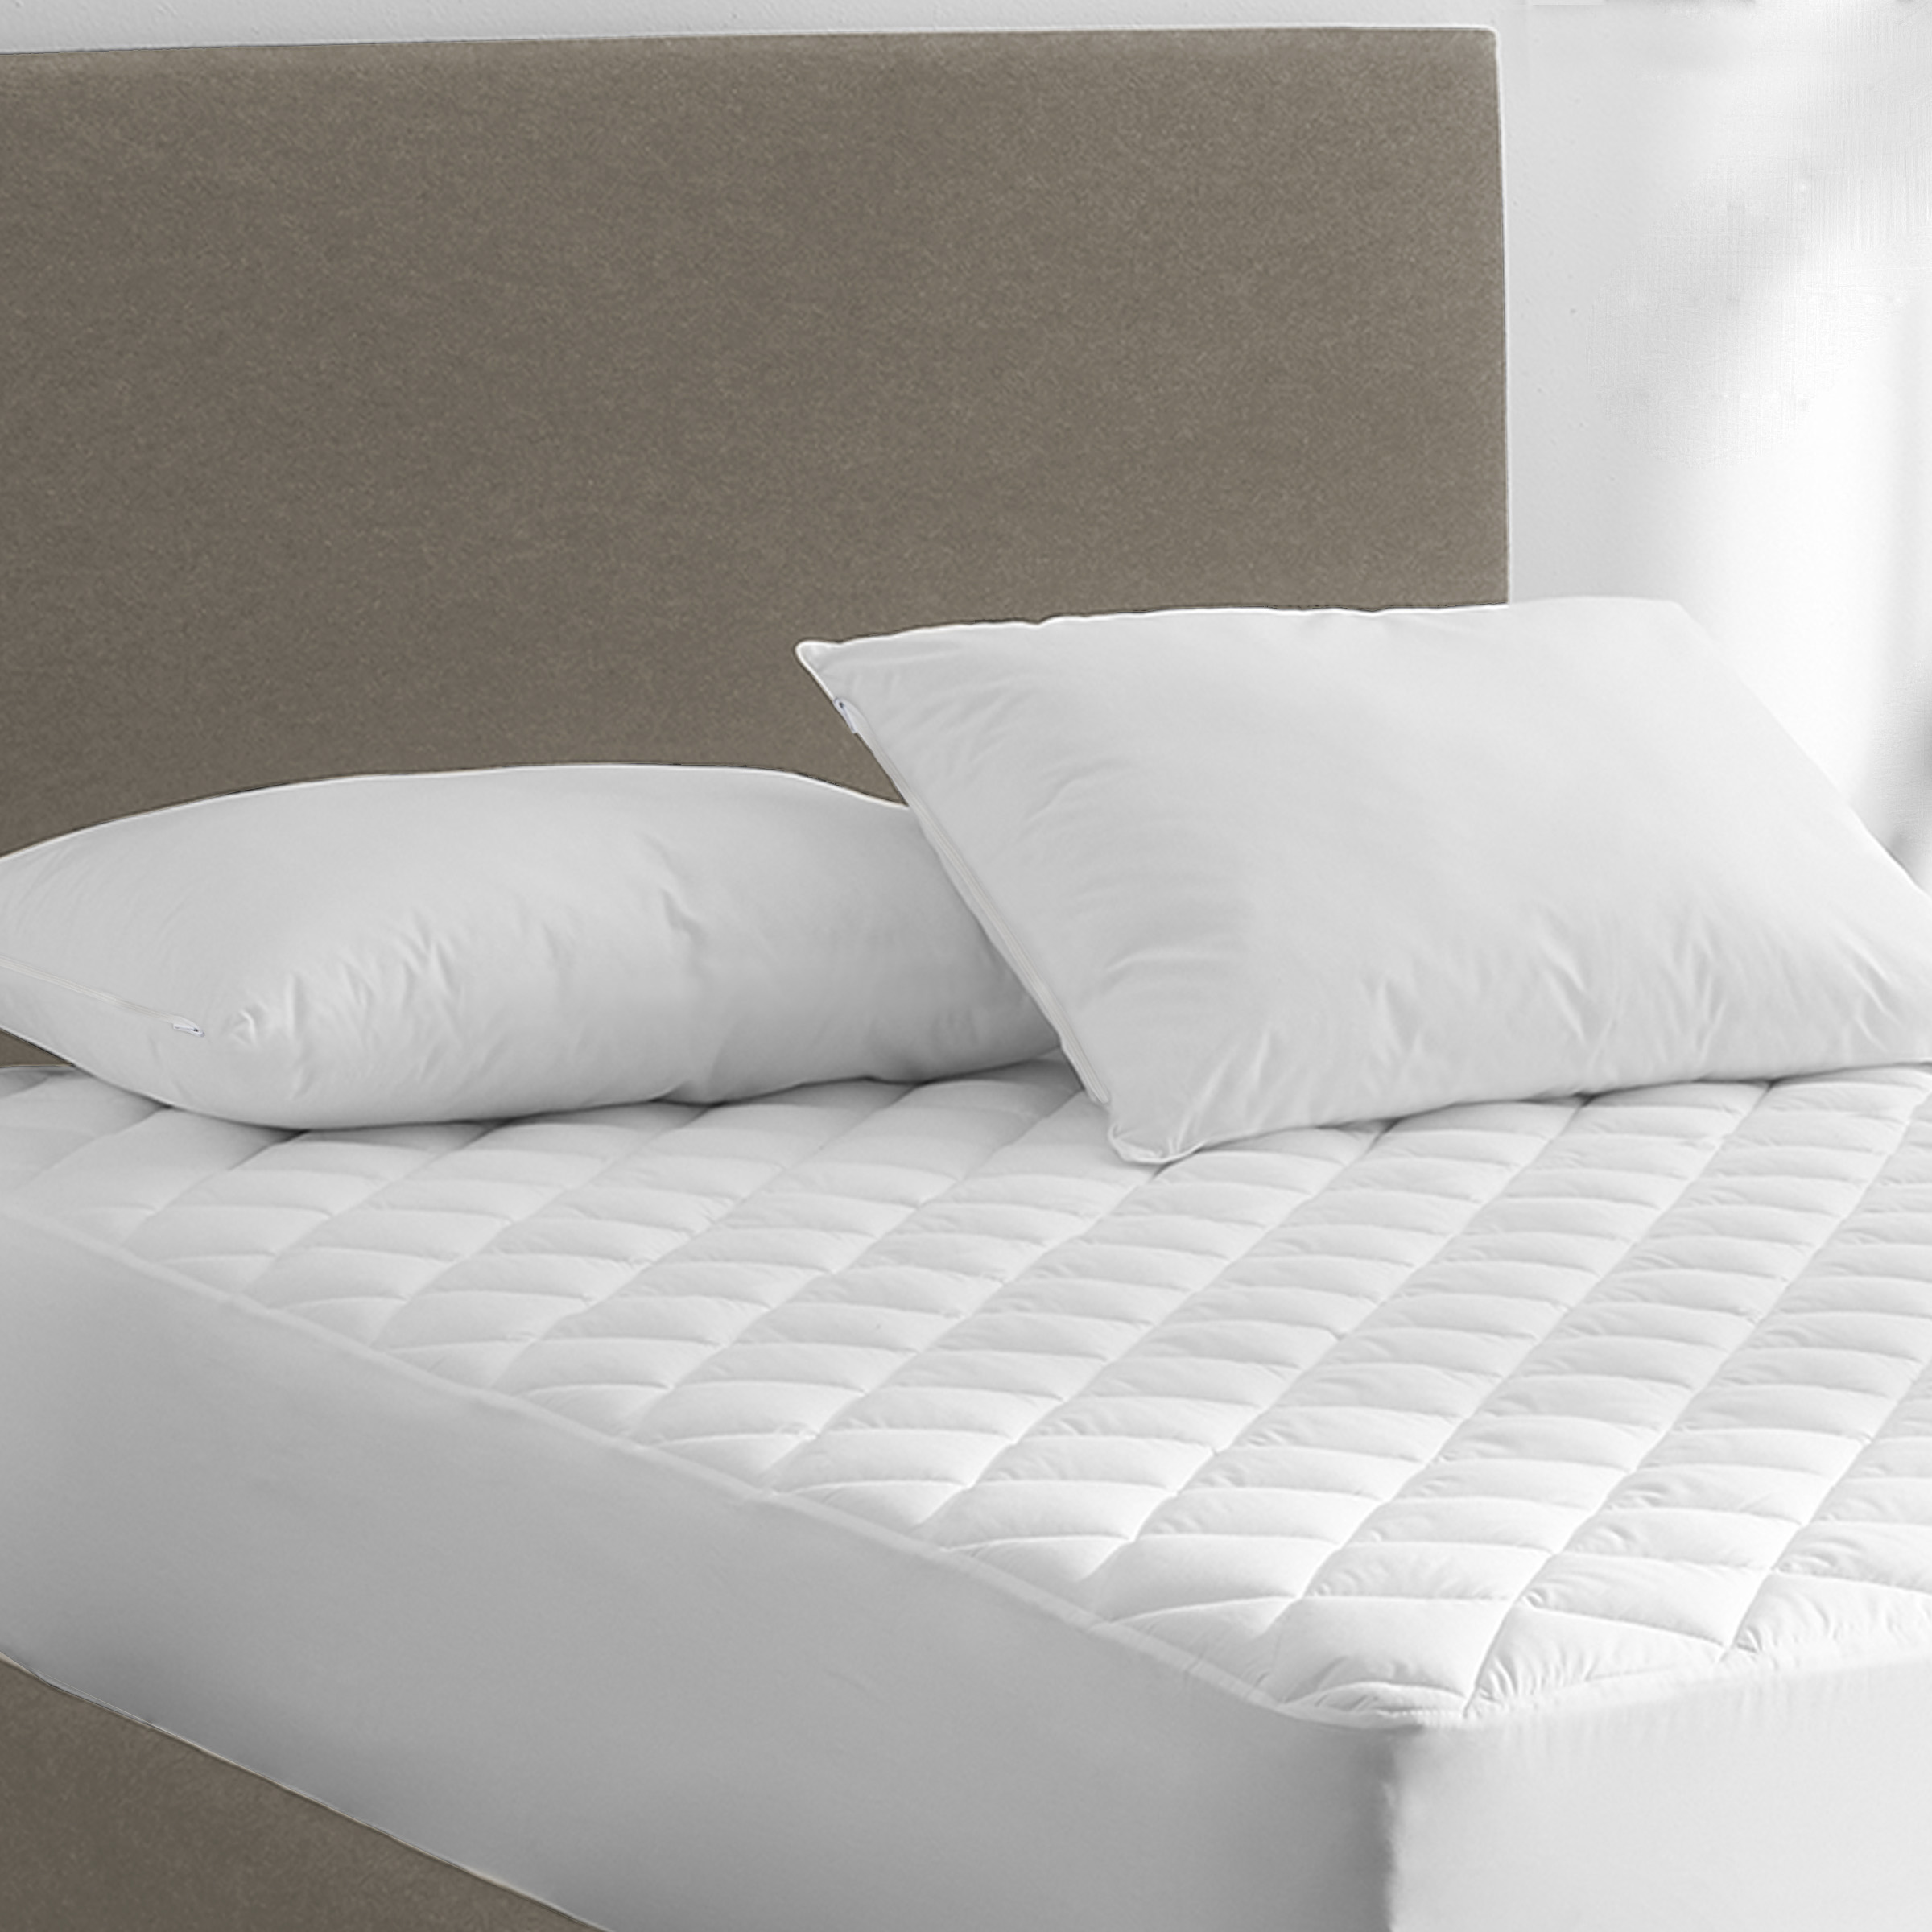 mainstays prochill pillow protector with cooling technology